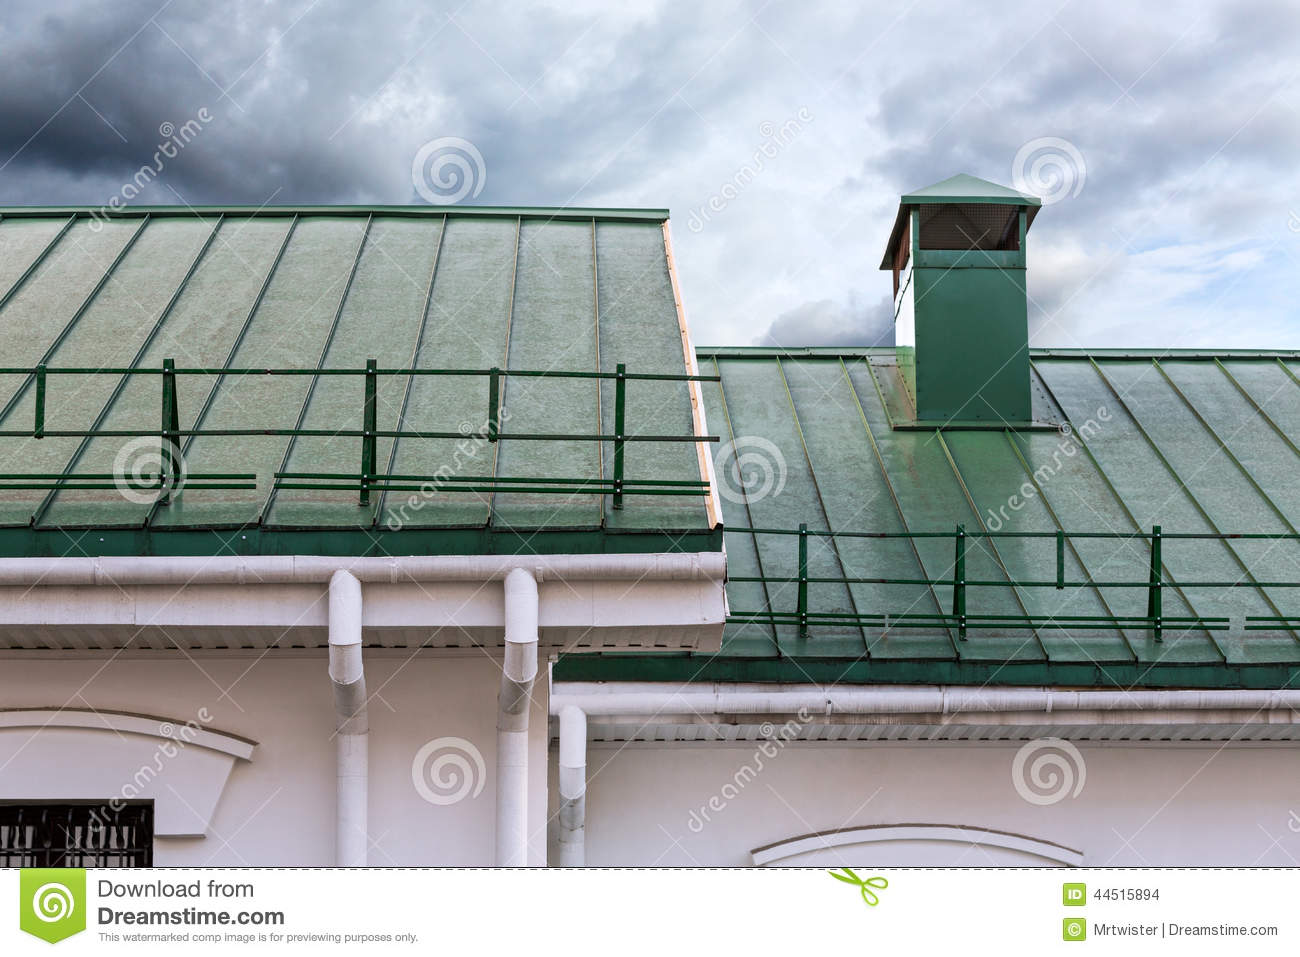 Roof with gutter and chimney